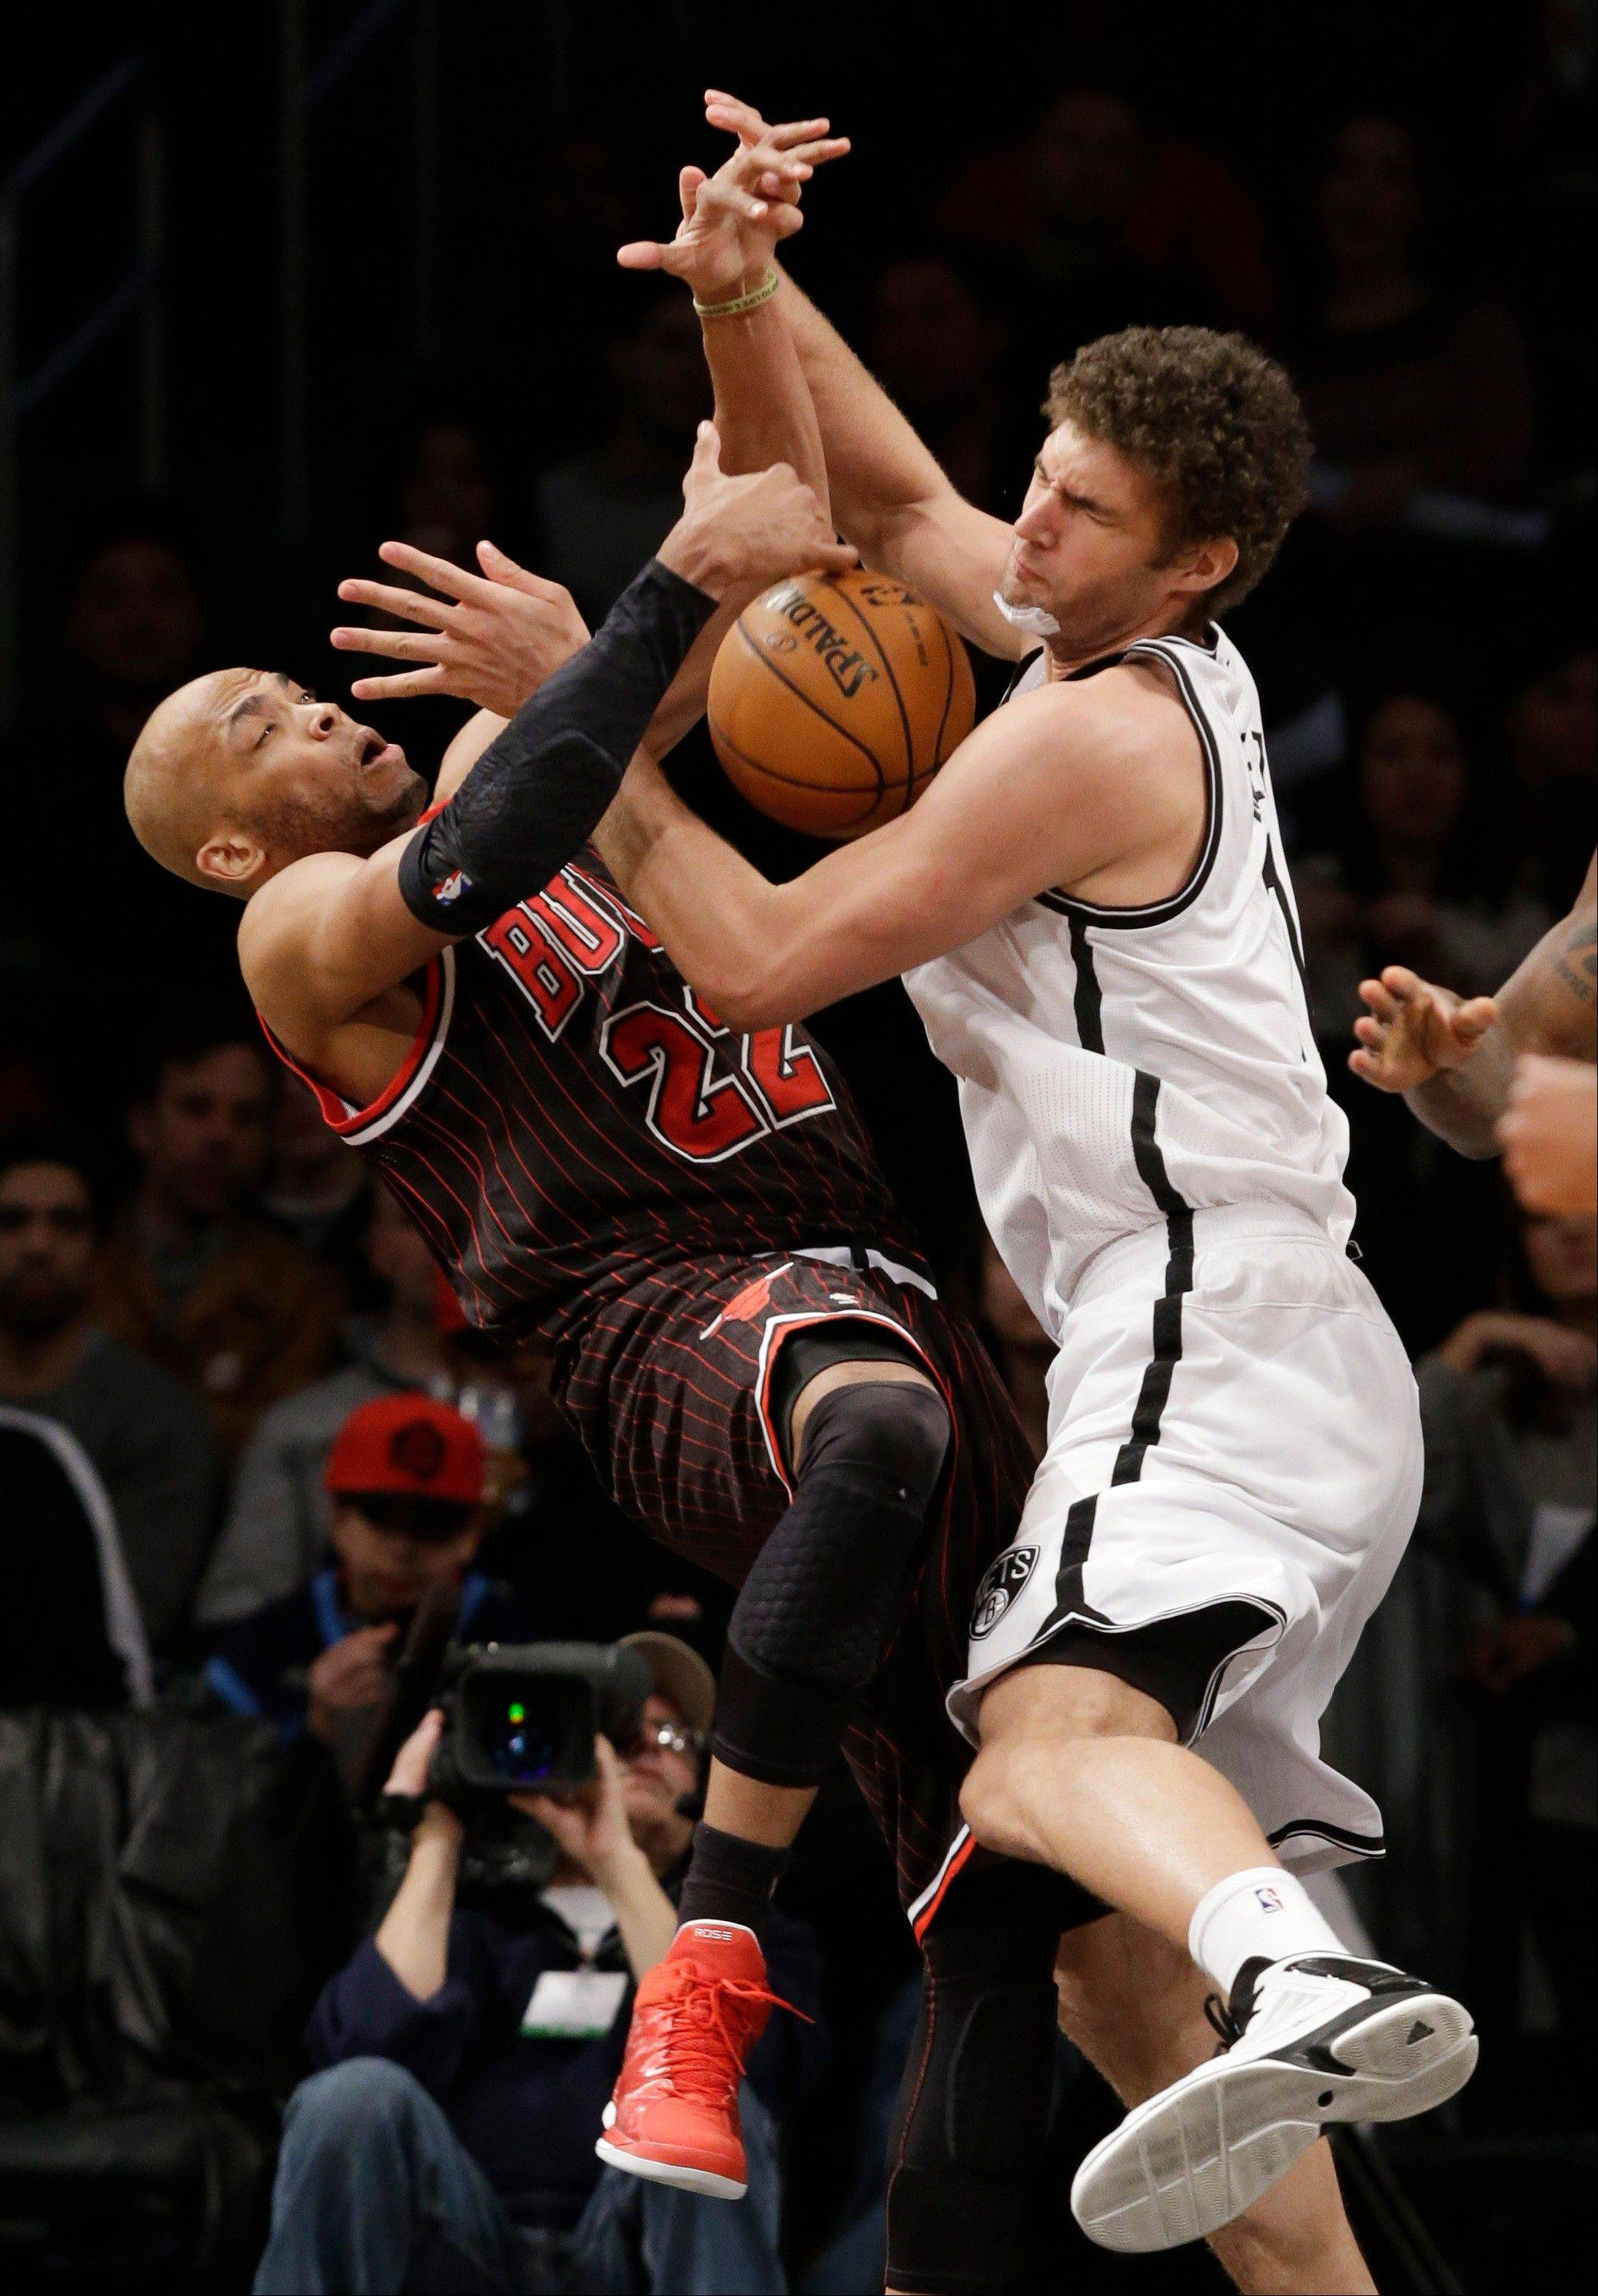 Brooklyn Nets center Brook Lopez, right, becomes entangled with Chicago Bulls forward Taj Gibson (22) in the second half of their NBA basketball game at the Barclays Center, Friday, Feb. 1, 2013, in New York. Lopez had 20 points as the Nets defeated the Bulls 93-89.